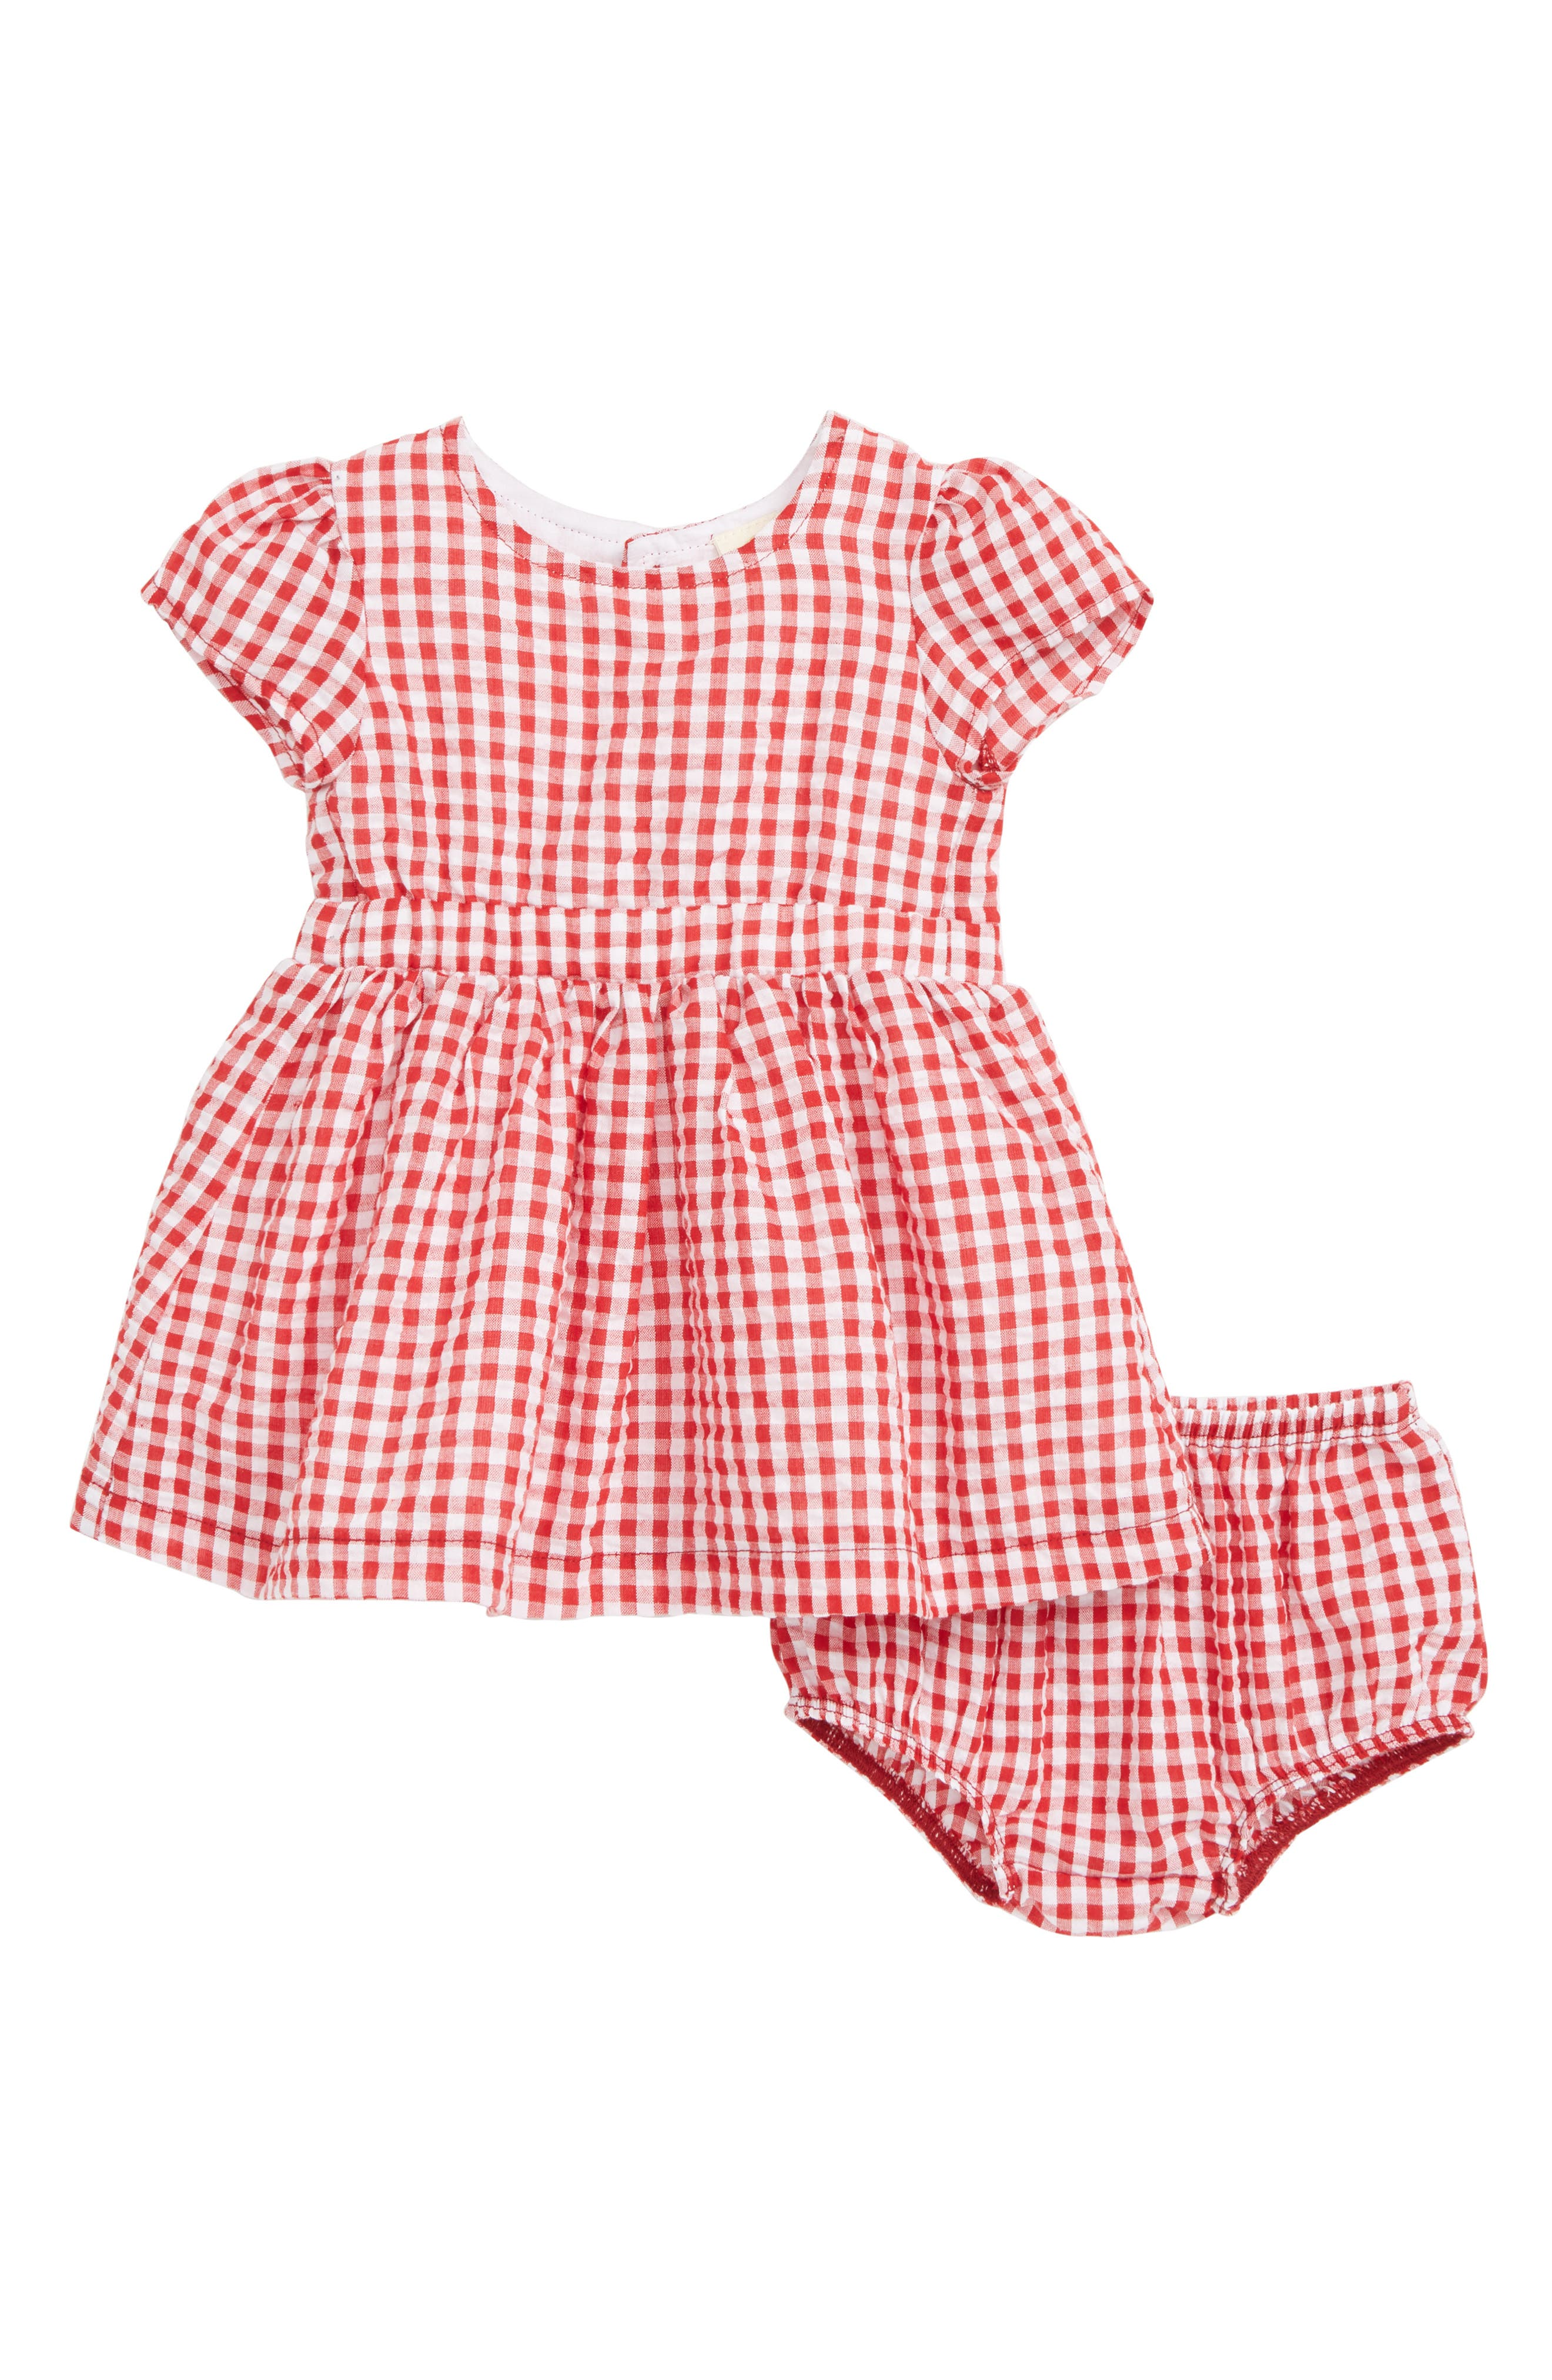 Clothing, Shoes & Accessories Baby & Toddler Clothing Disney Minnie Mouse Baby Girl 12months One Piece Romper Jade White